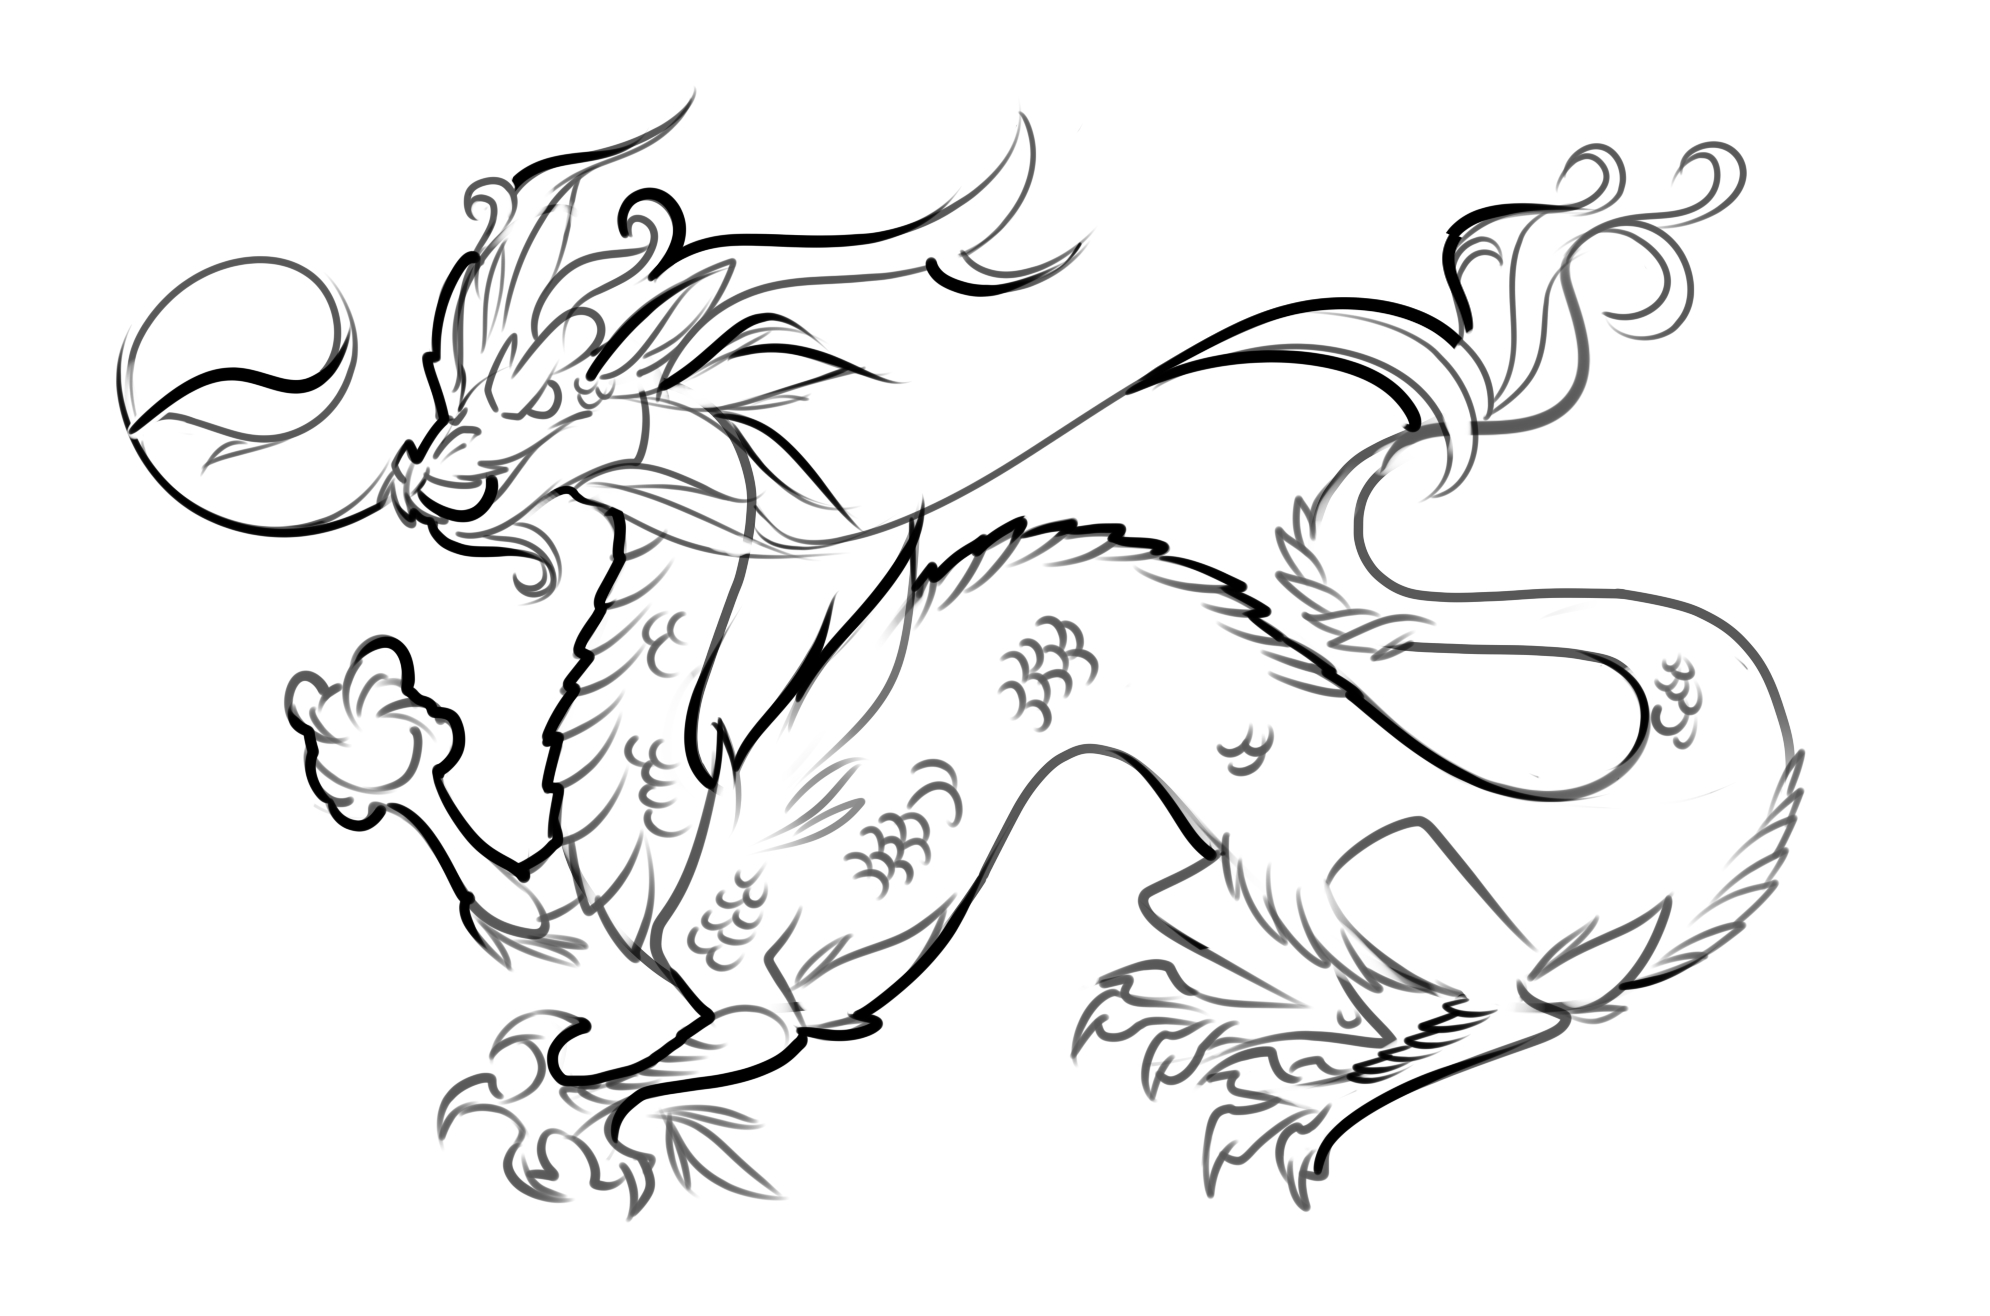 Free Printable Dragon Coloring Pages For Kids   Things That Caught - Free Printable Chinese Dragon Coloring Pages